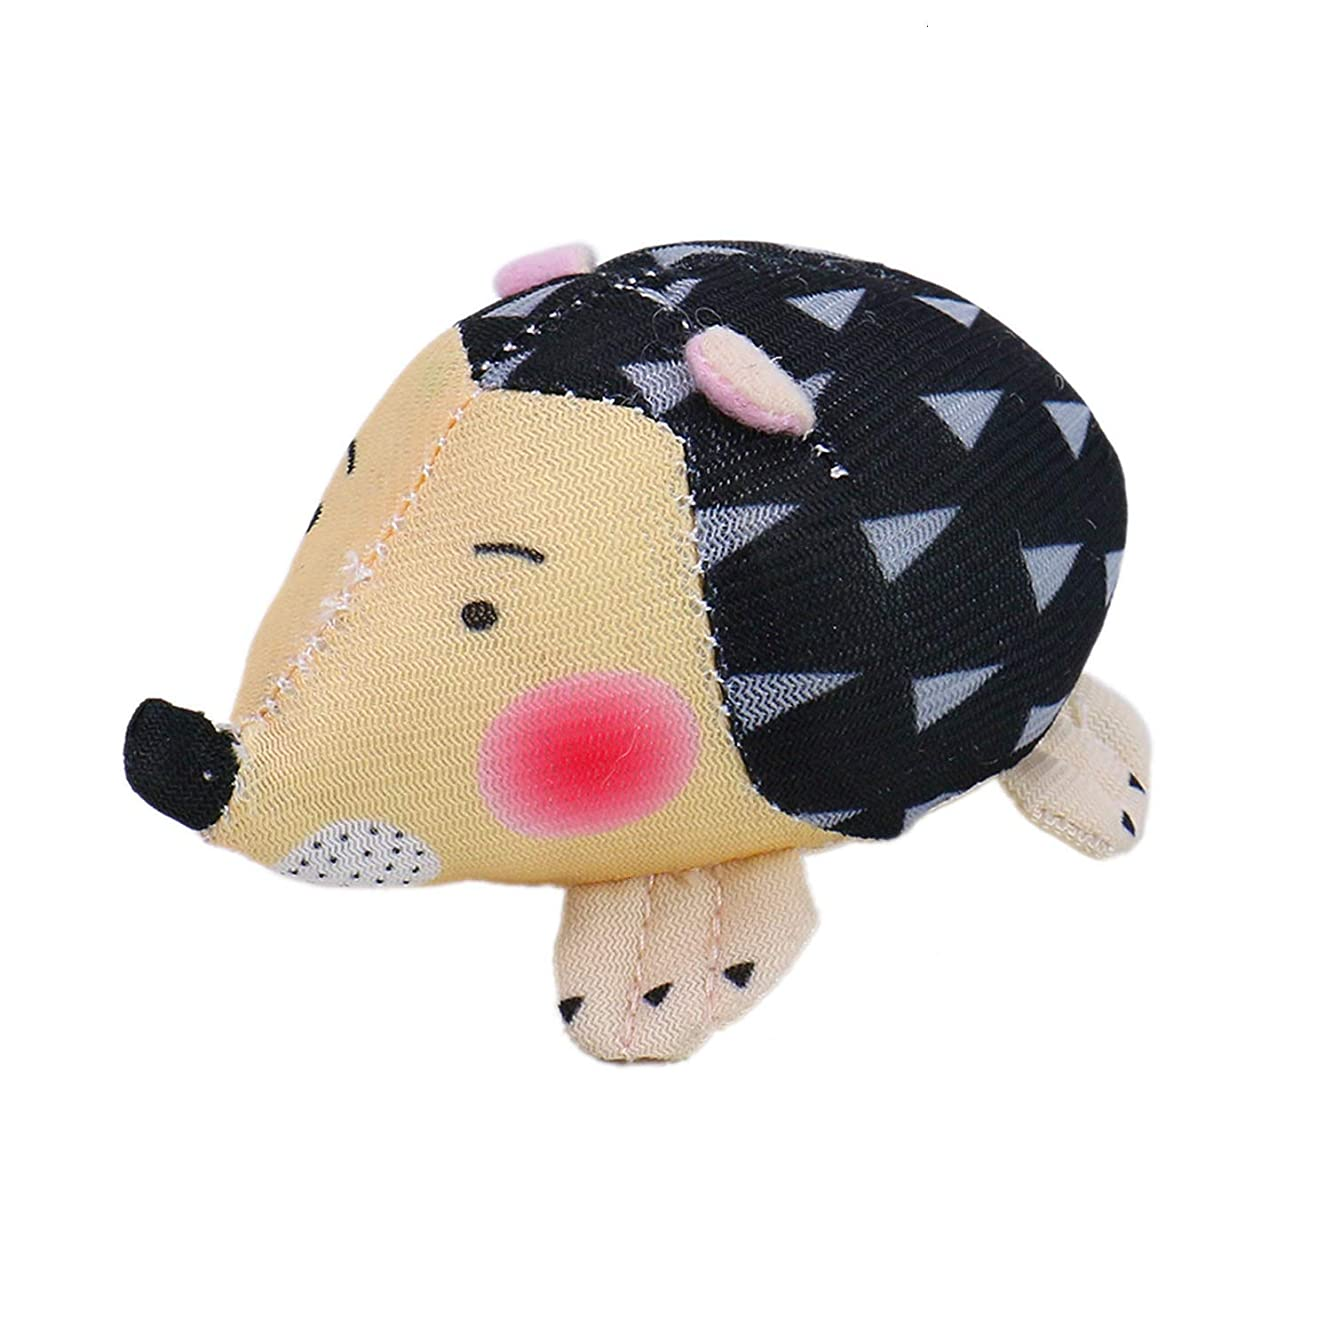 Monrocco Hedgehog Sewing Needle Cushion Pin Cushion Sewing Accessories for Sewing and Quilting